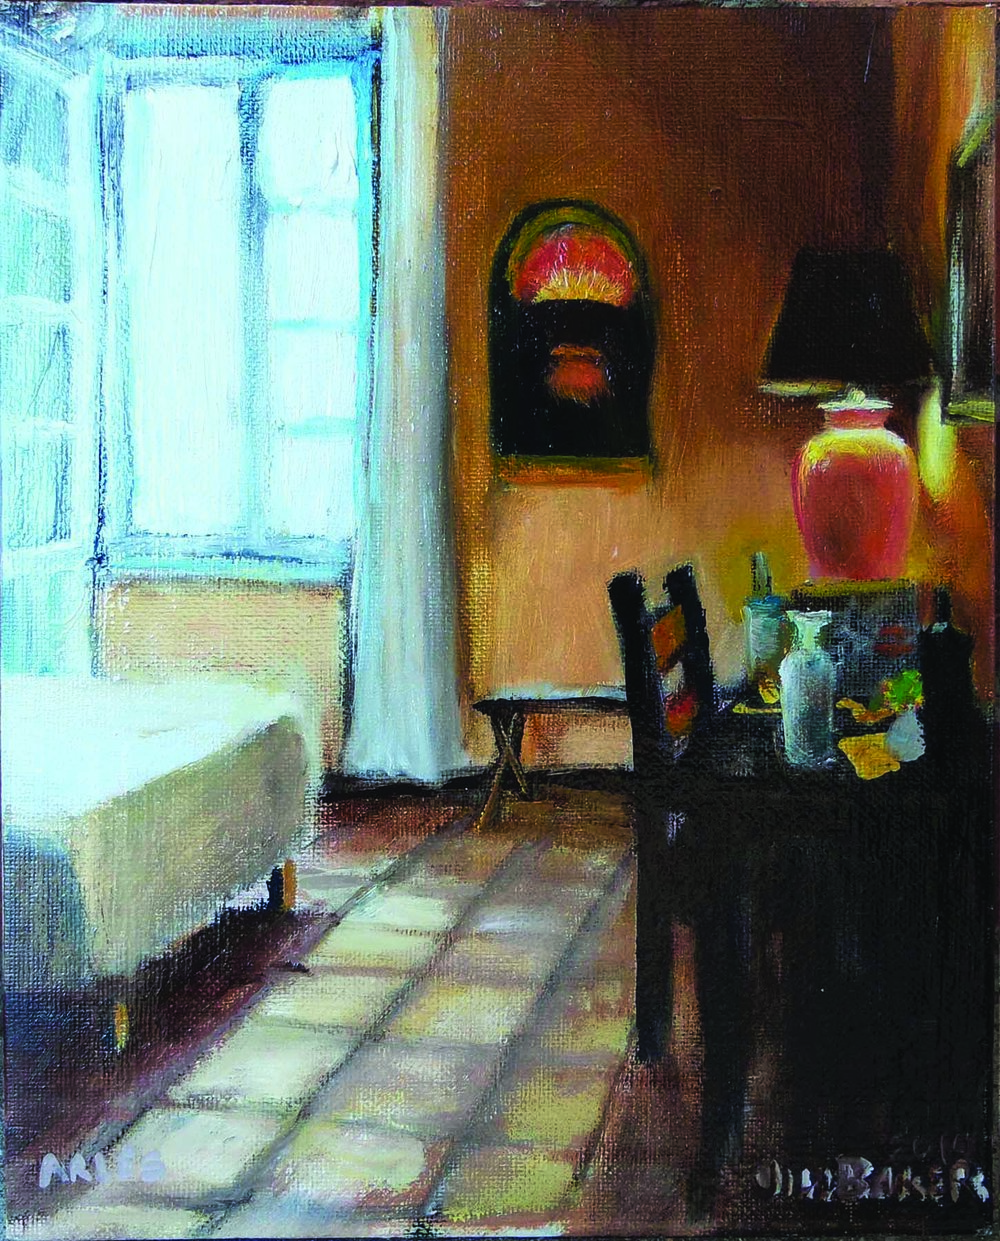 """My Room In Arles"" by Jill Baker, oil, 8x10in, 2017, $5000/Prints available $200"